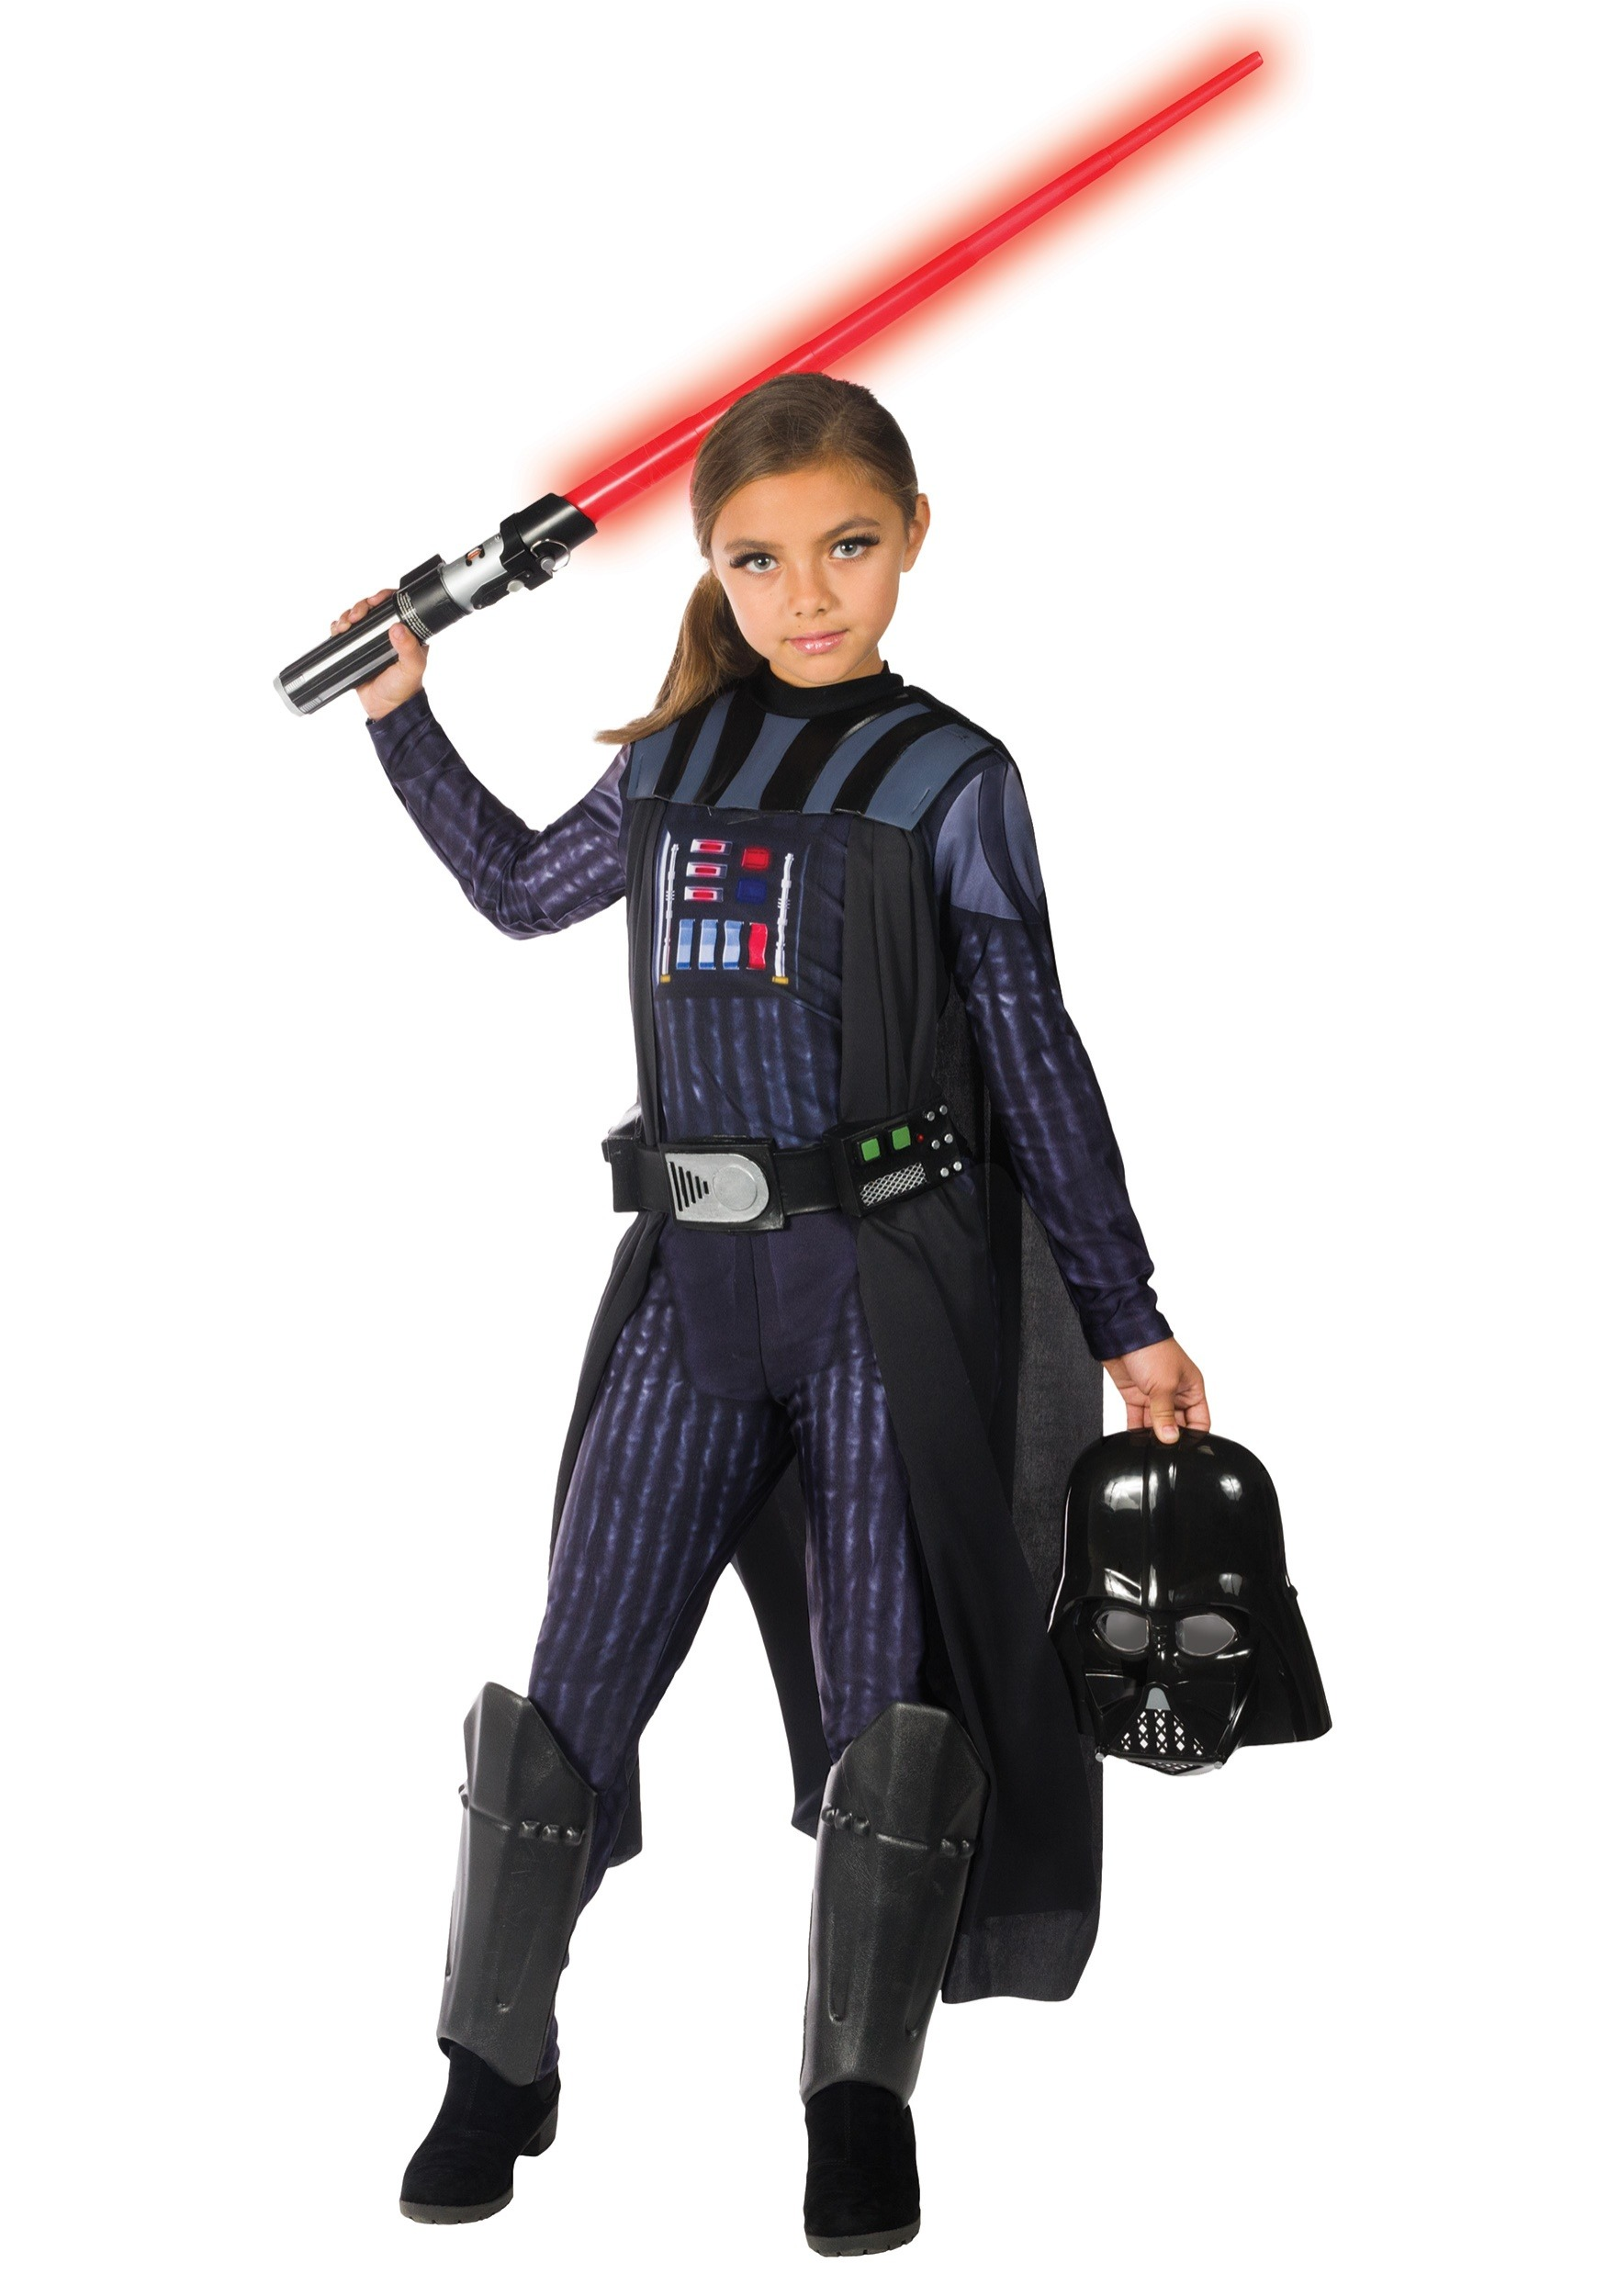 vader single asian girls Darth vader vs team rwby discussion  this gives a force of 445,770 n and an energy of 213,969 j for a single  i'd say the girls are faster, but vader has .